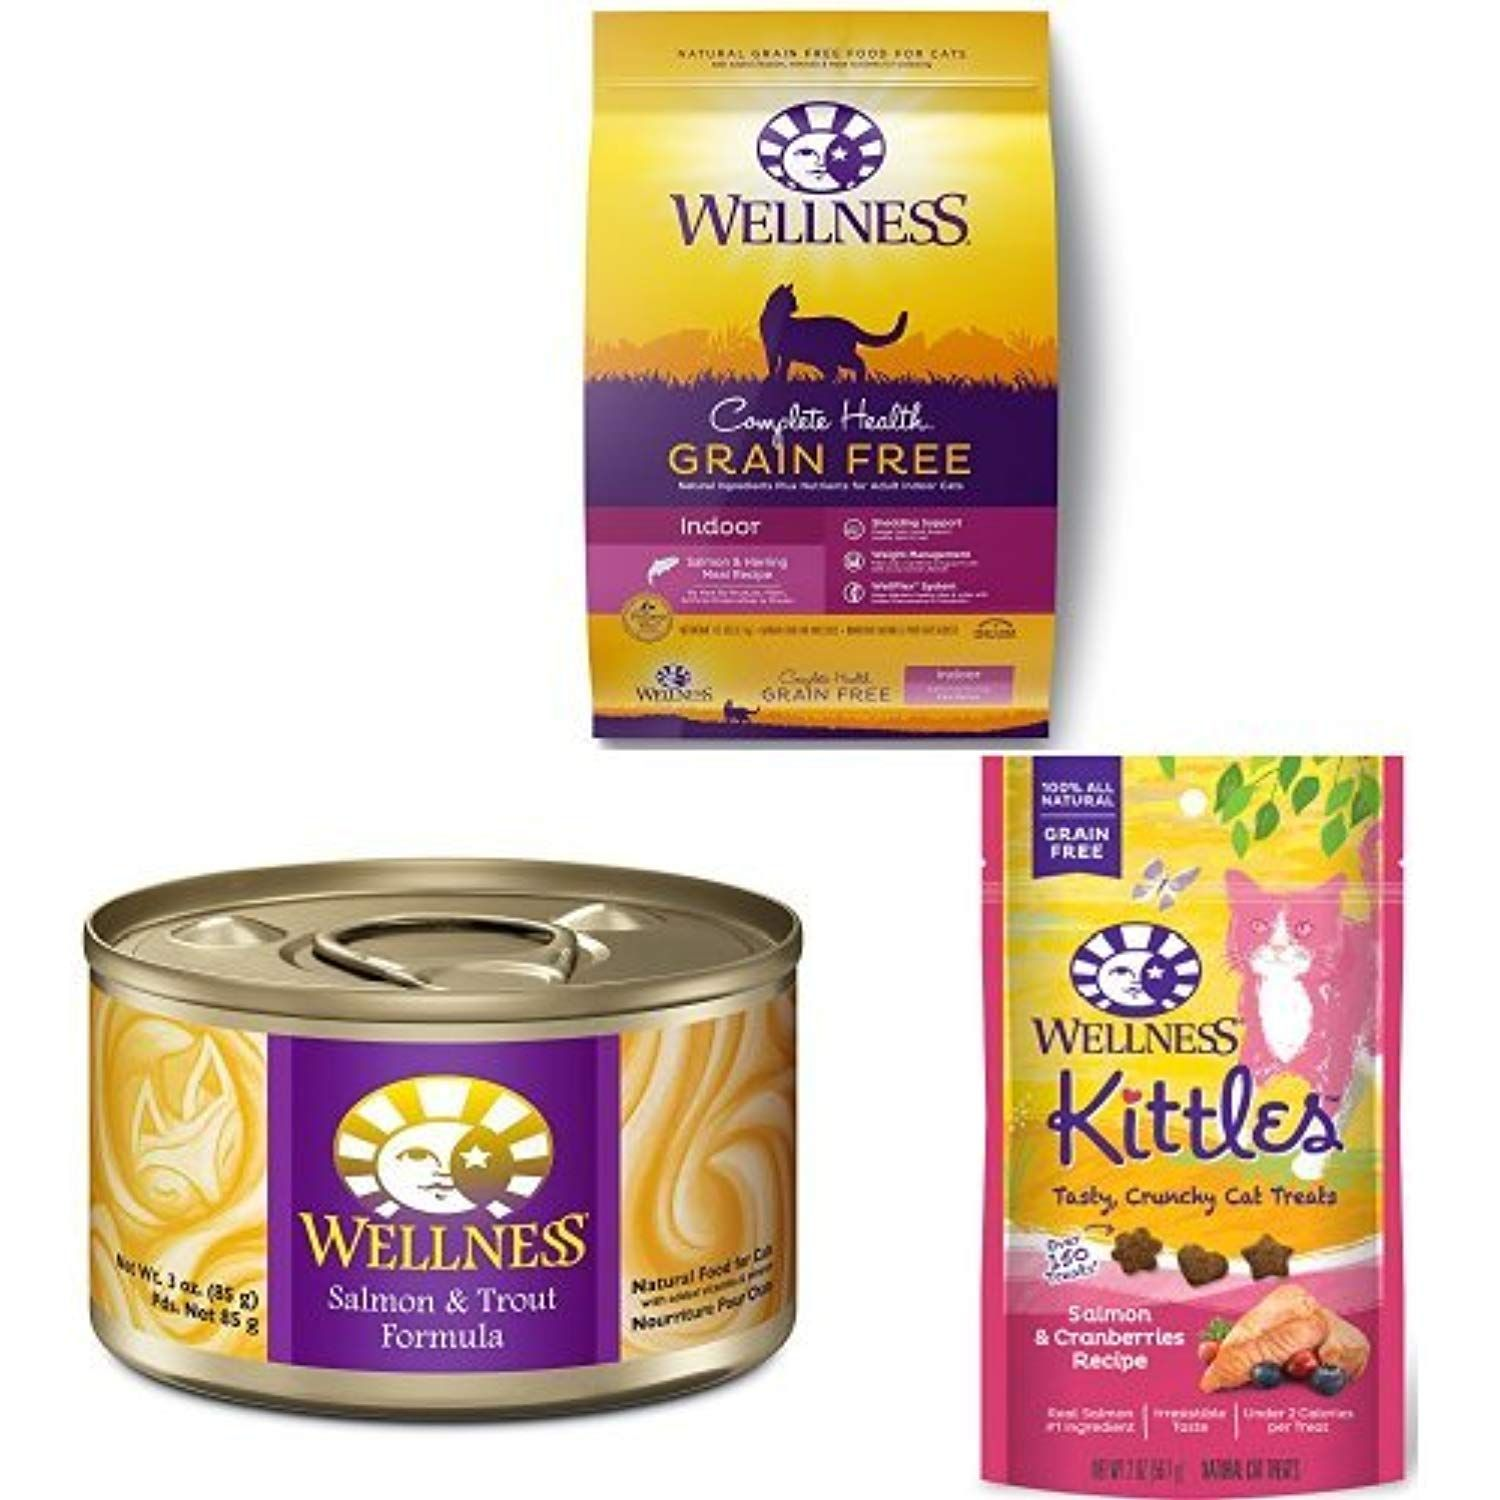 Wellness Well Pack Grain Free Seafood Sensations Includes